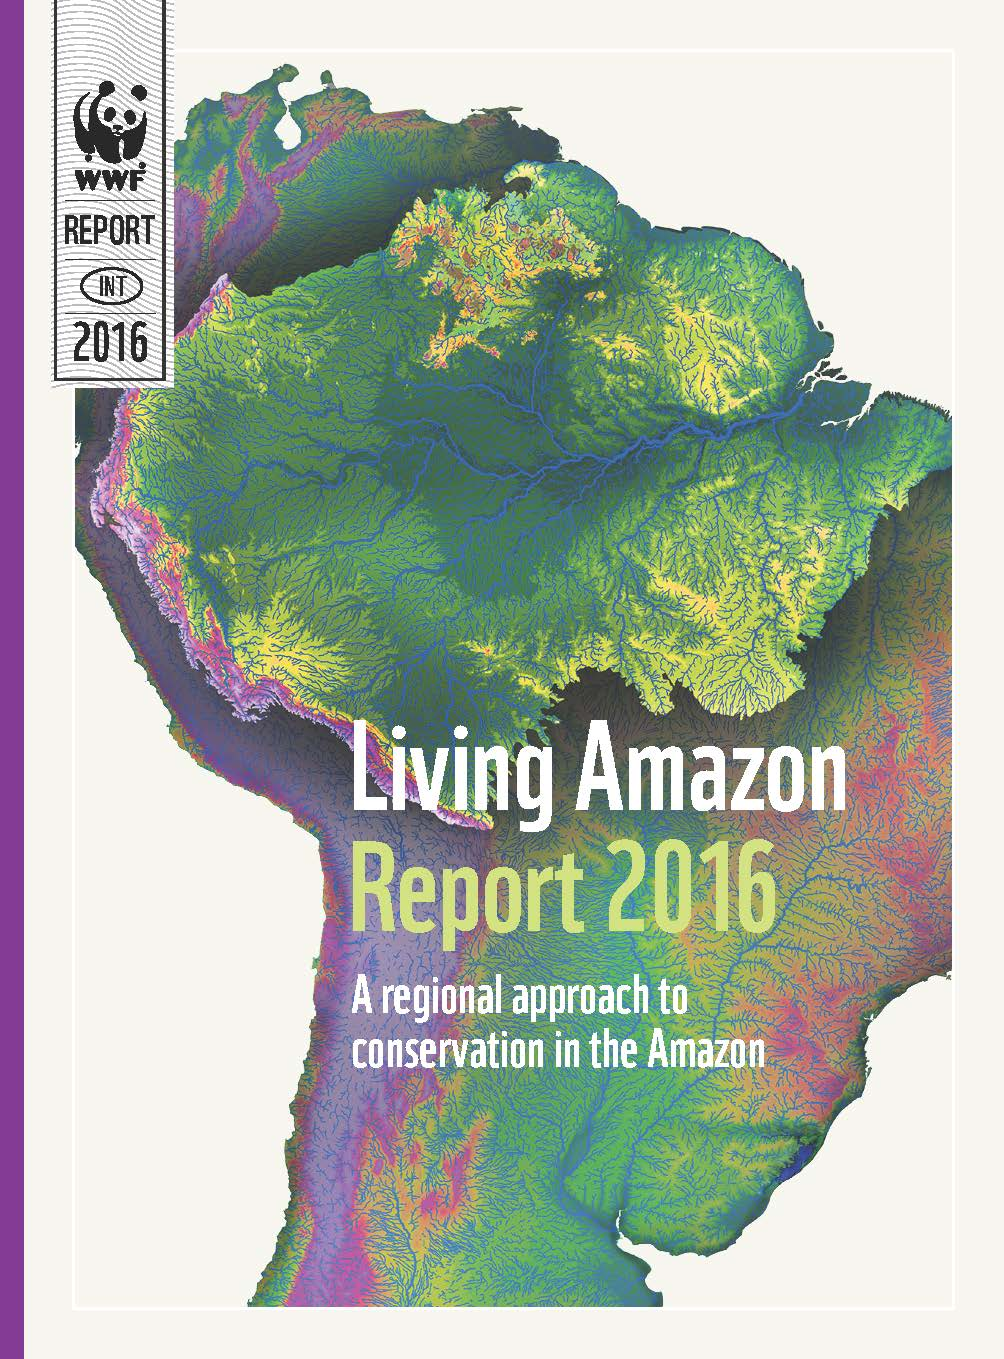 Living Amazon Report 2016